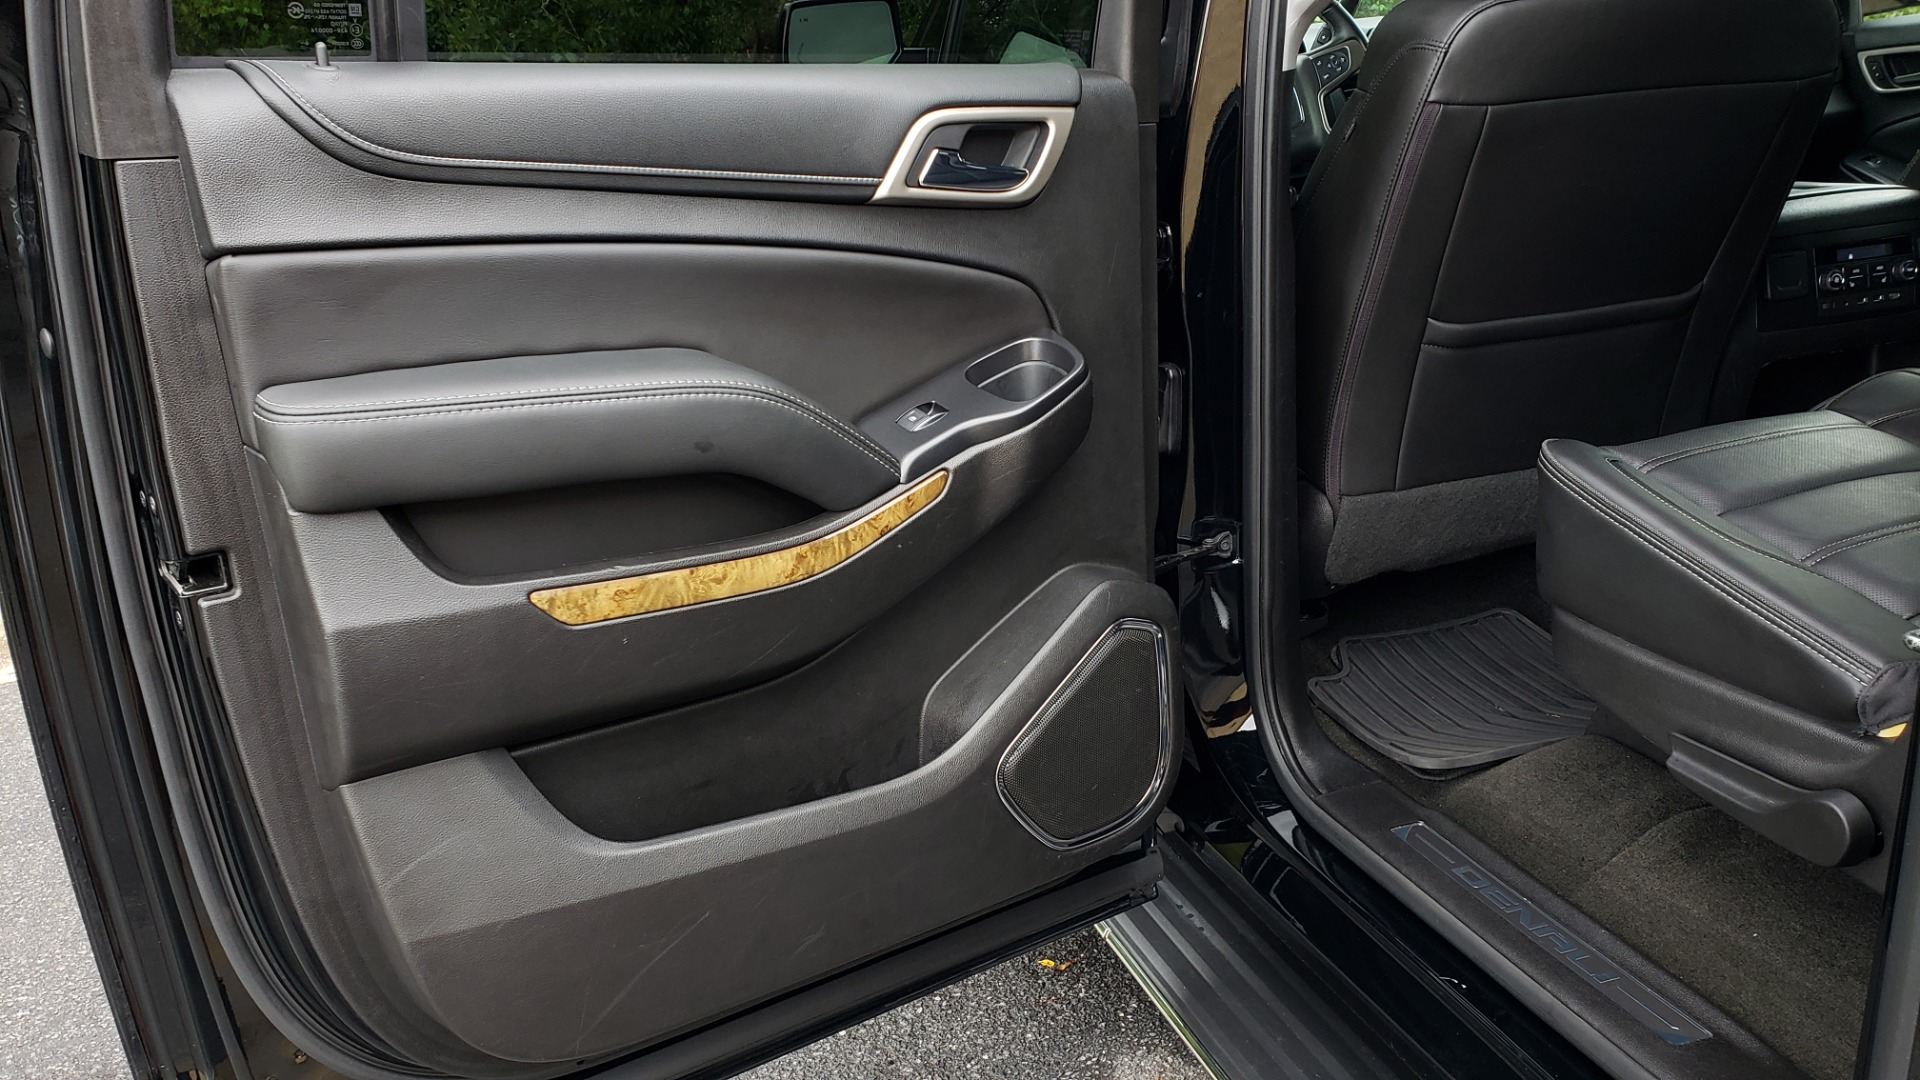 Used 2017 GMC YUKON XL DENALI 4WD / NAV / SUNROOF / ENT / 3-ROWS / BOSE / REARVIEW for sale $48,695 at Formula Imports in Charlotte NC 28227 64